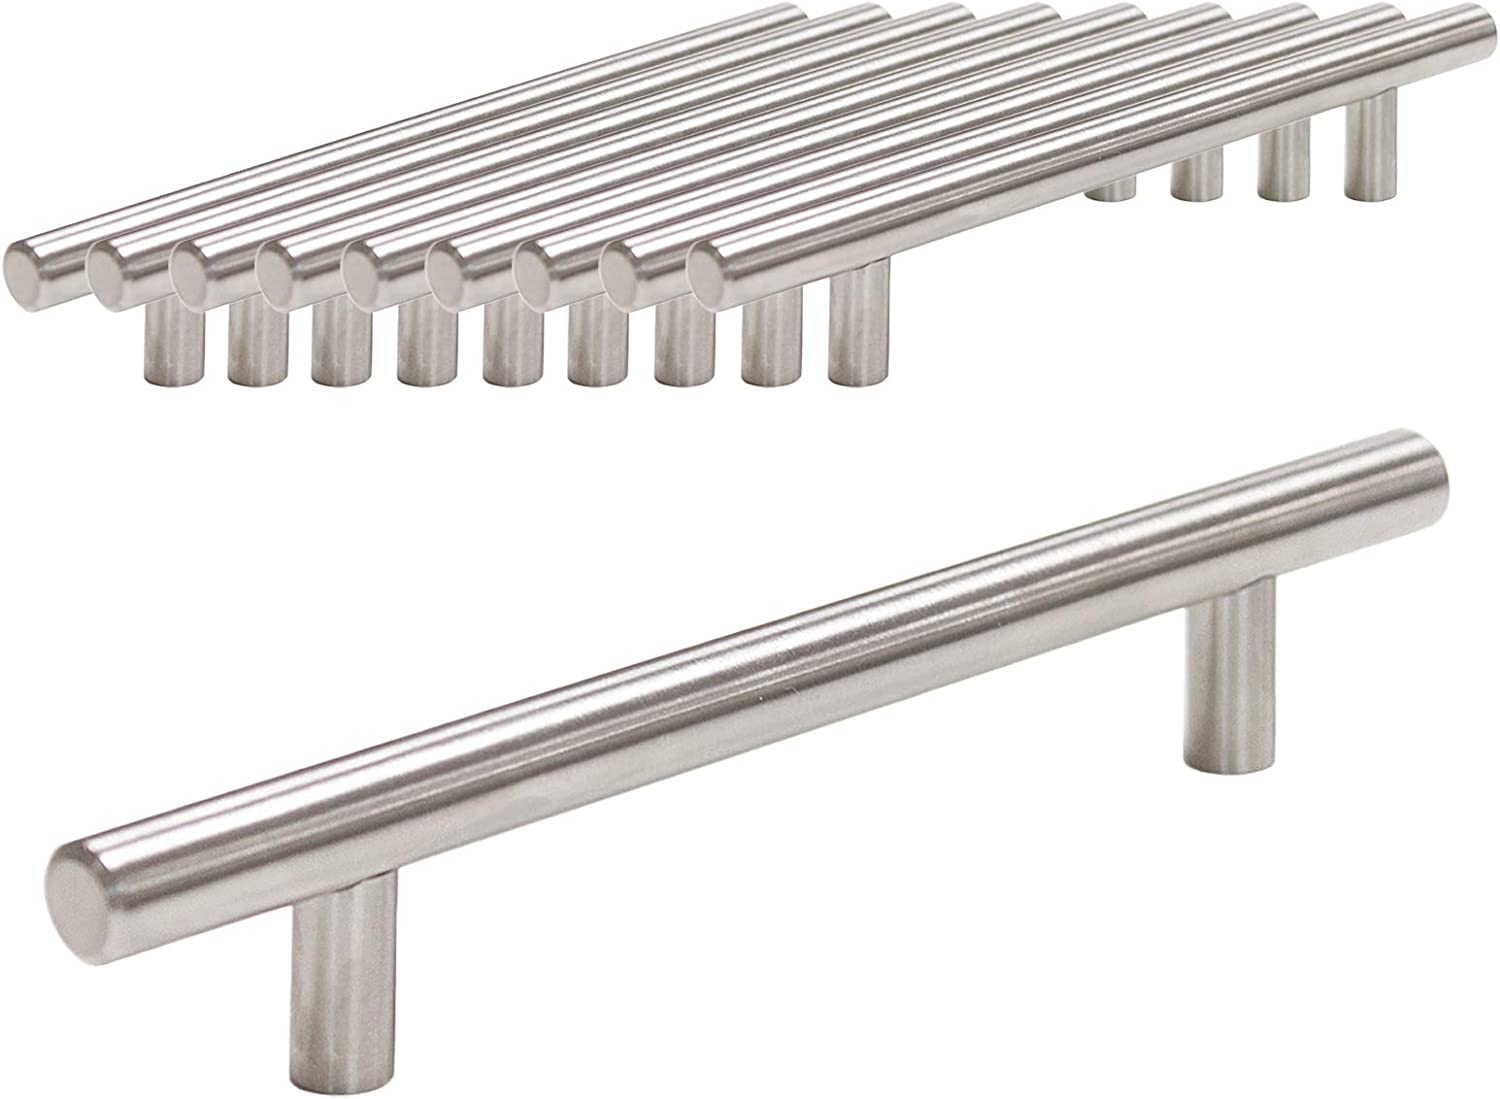 25 Pack Probrico Brushed Nickel Stainless Steel Kitchen Cabinet T Bar Handle Furniture Drawer Pulls Cupboard Knobs 96mm Hole Centers - 150mm Long